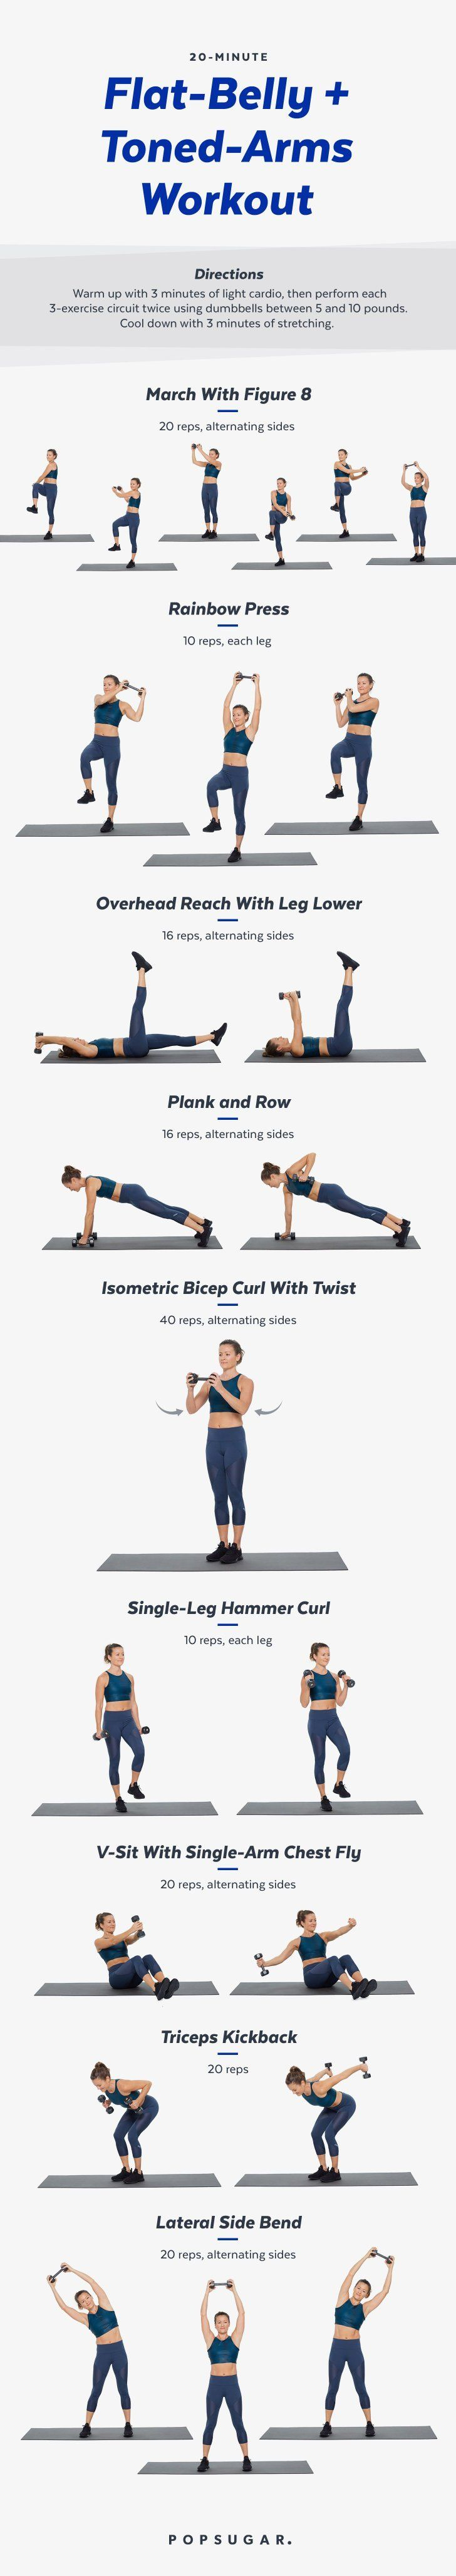 Ready to feel ab-tastic? Reach for a set of medium-size weights to work both the arms and the core. Click ...